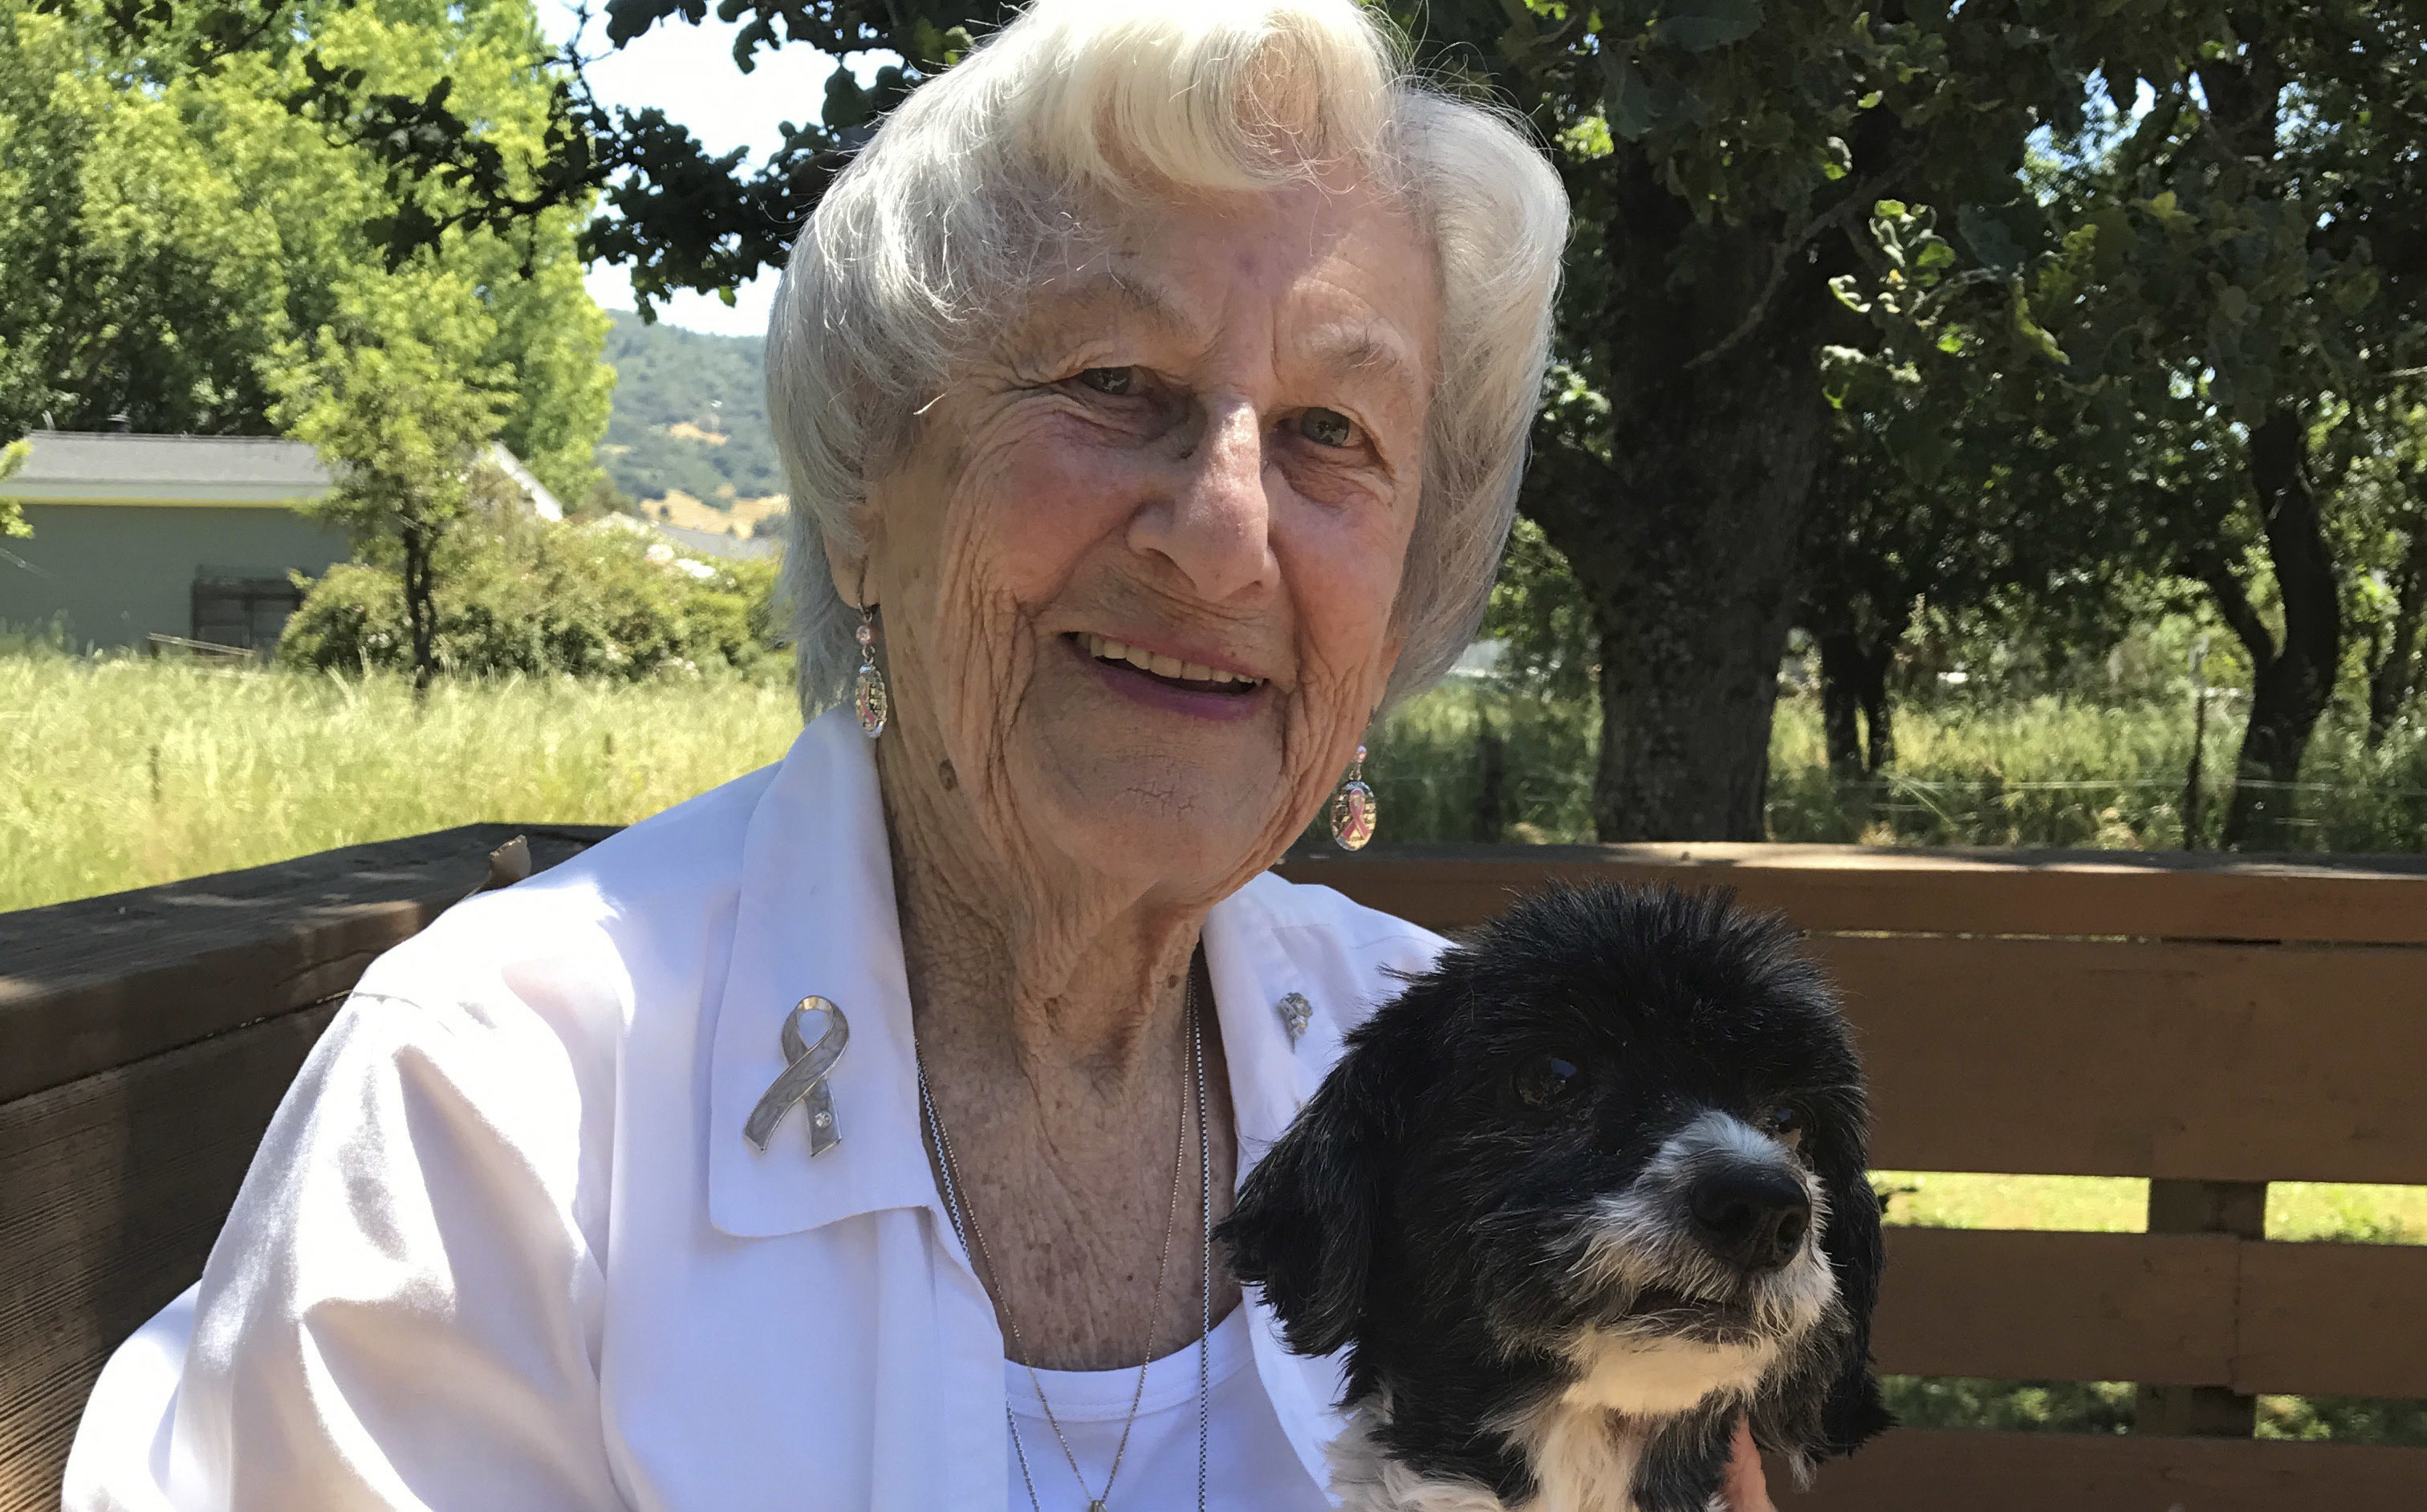 and old woman sits smiling on a park bench with a small black and white dog on her lap